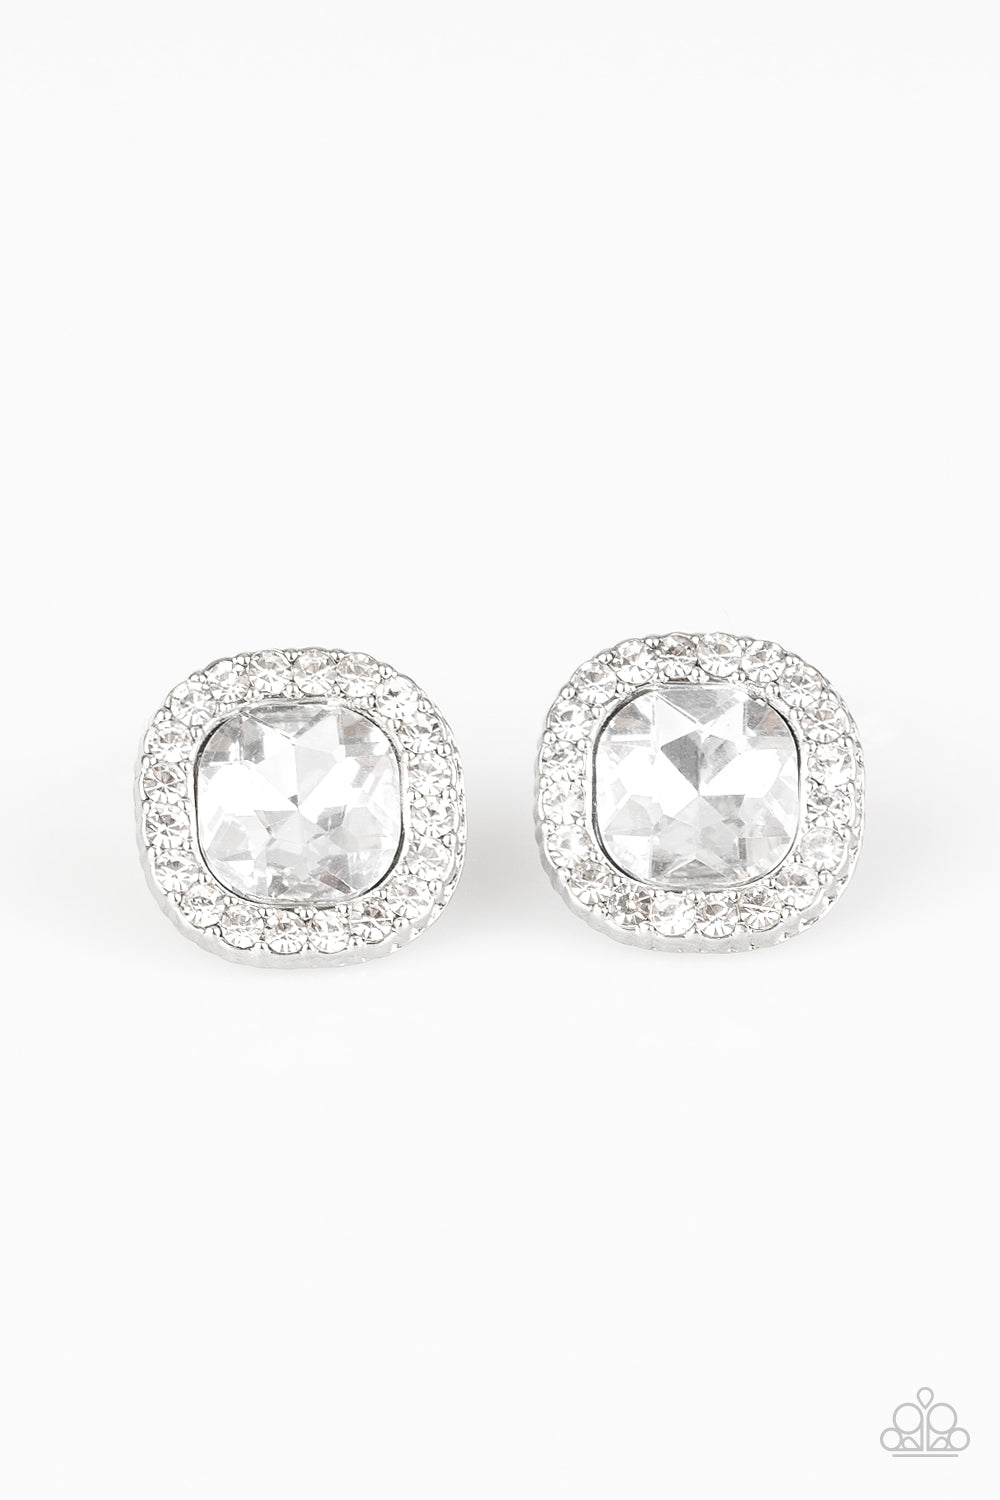 Paparazzi Bling Tastic! - White Earrings